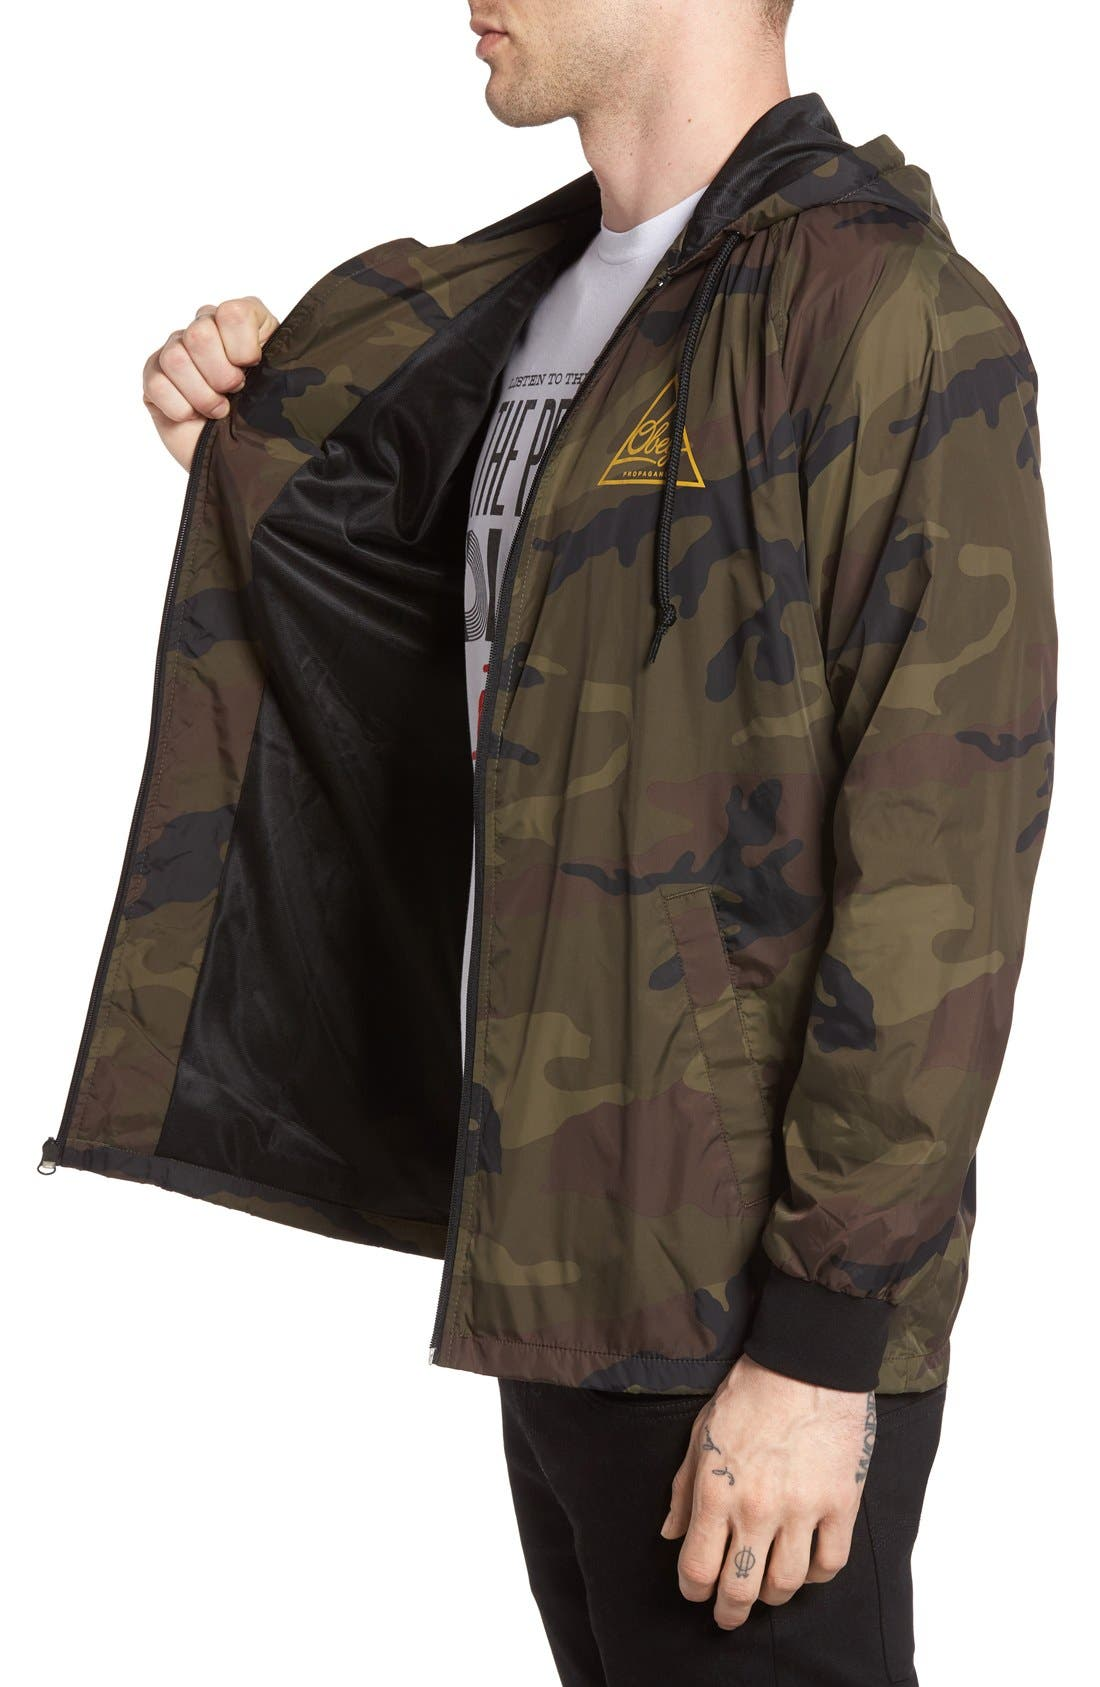 Next Round 2 Hooded Coach Jacket,                             Alternate thumbnail 7, color,                             305